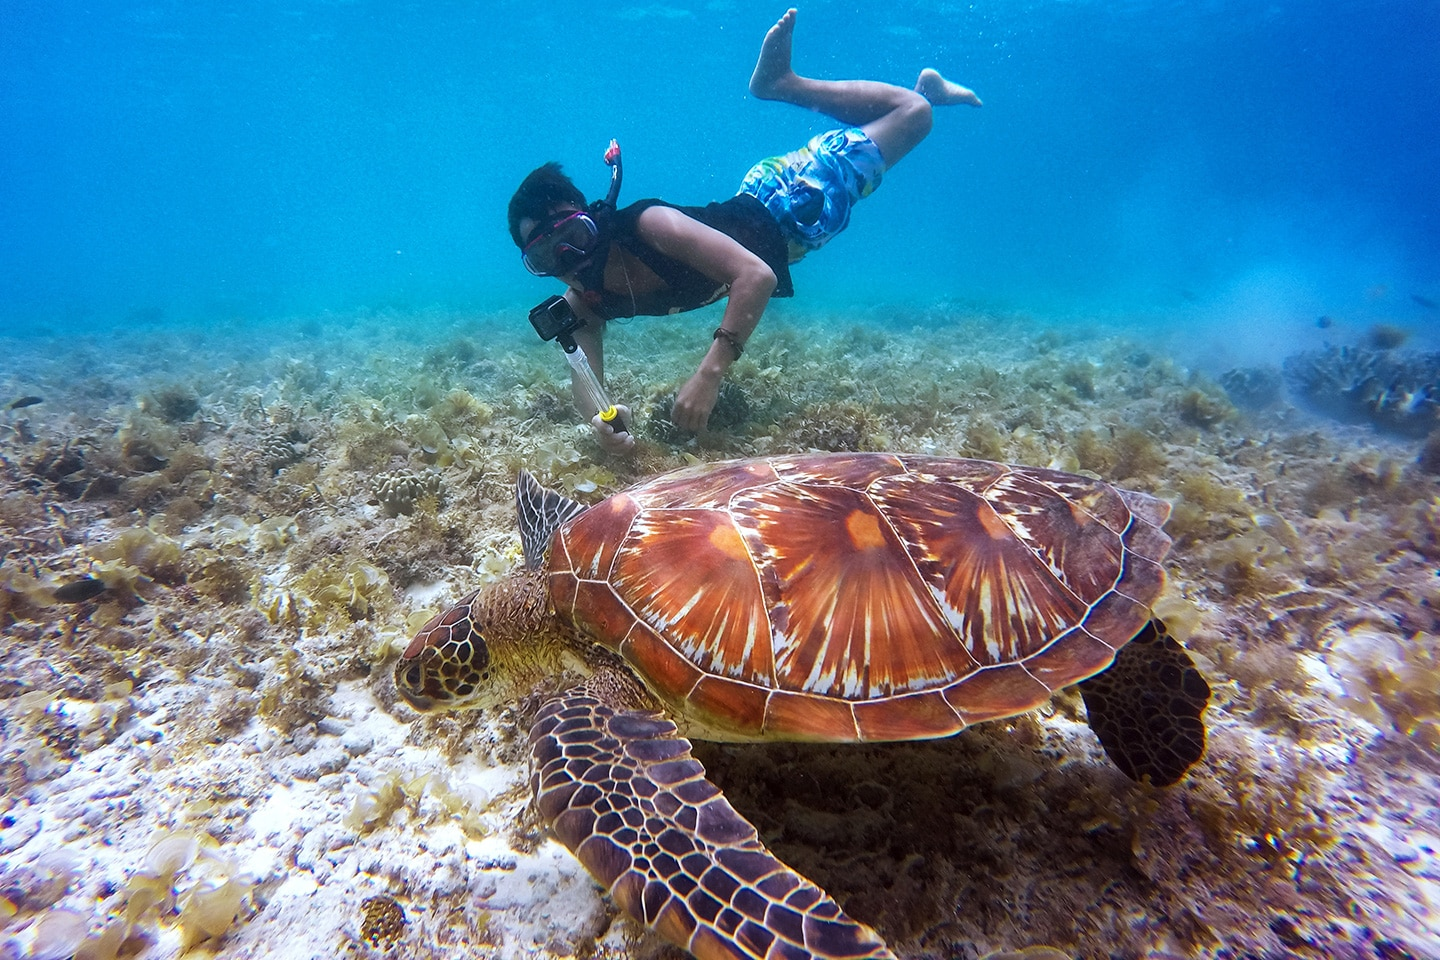 snorkeler is taking photos of a turtle with a selfie stick